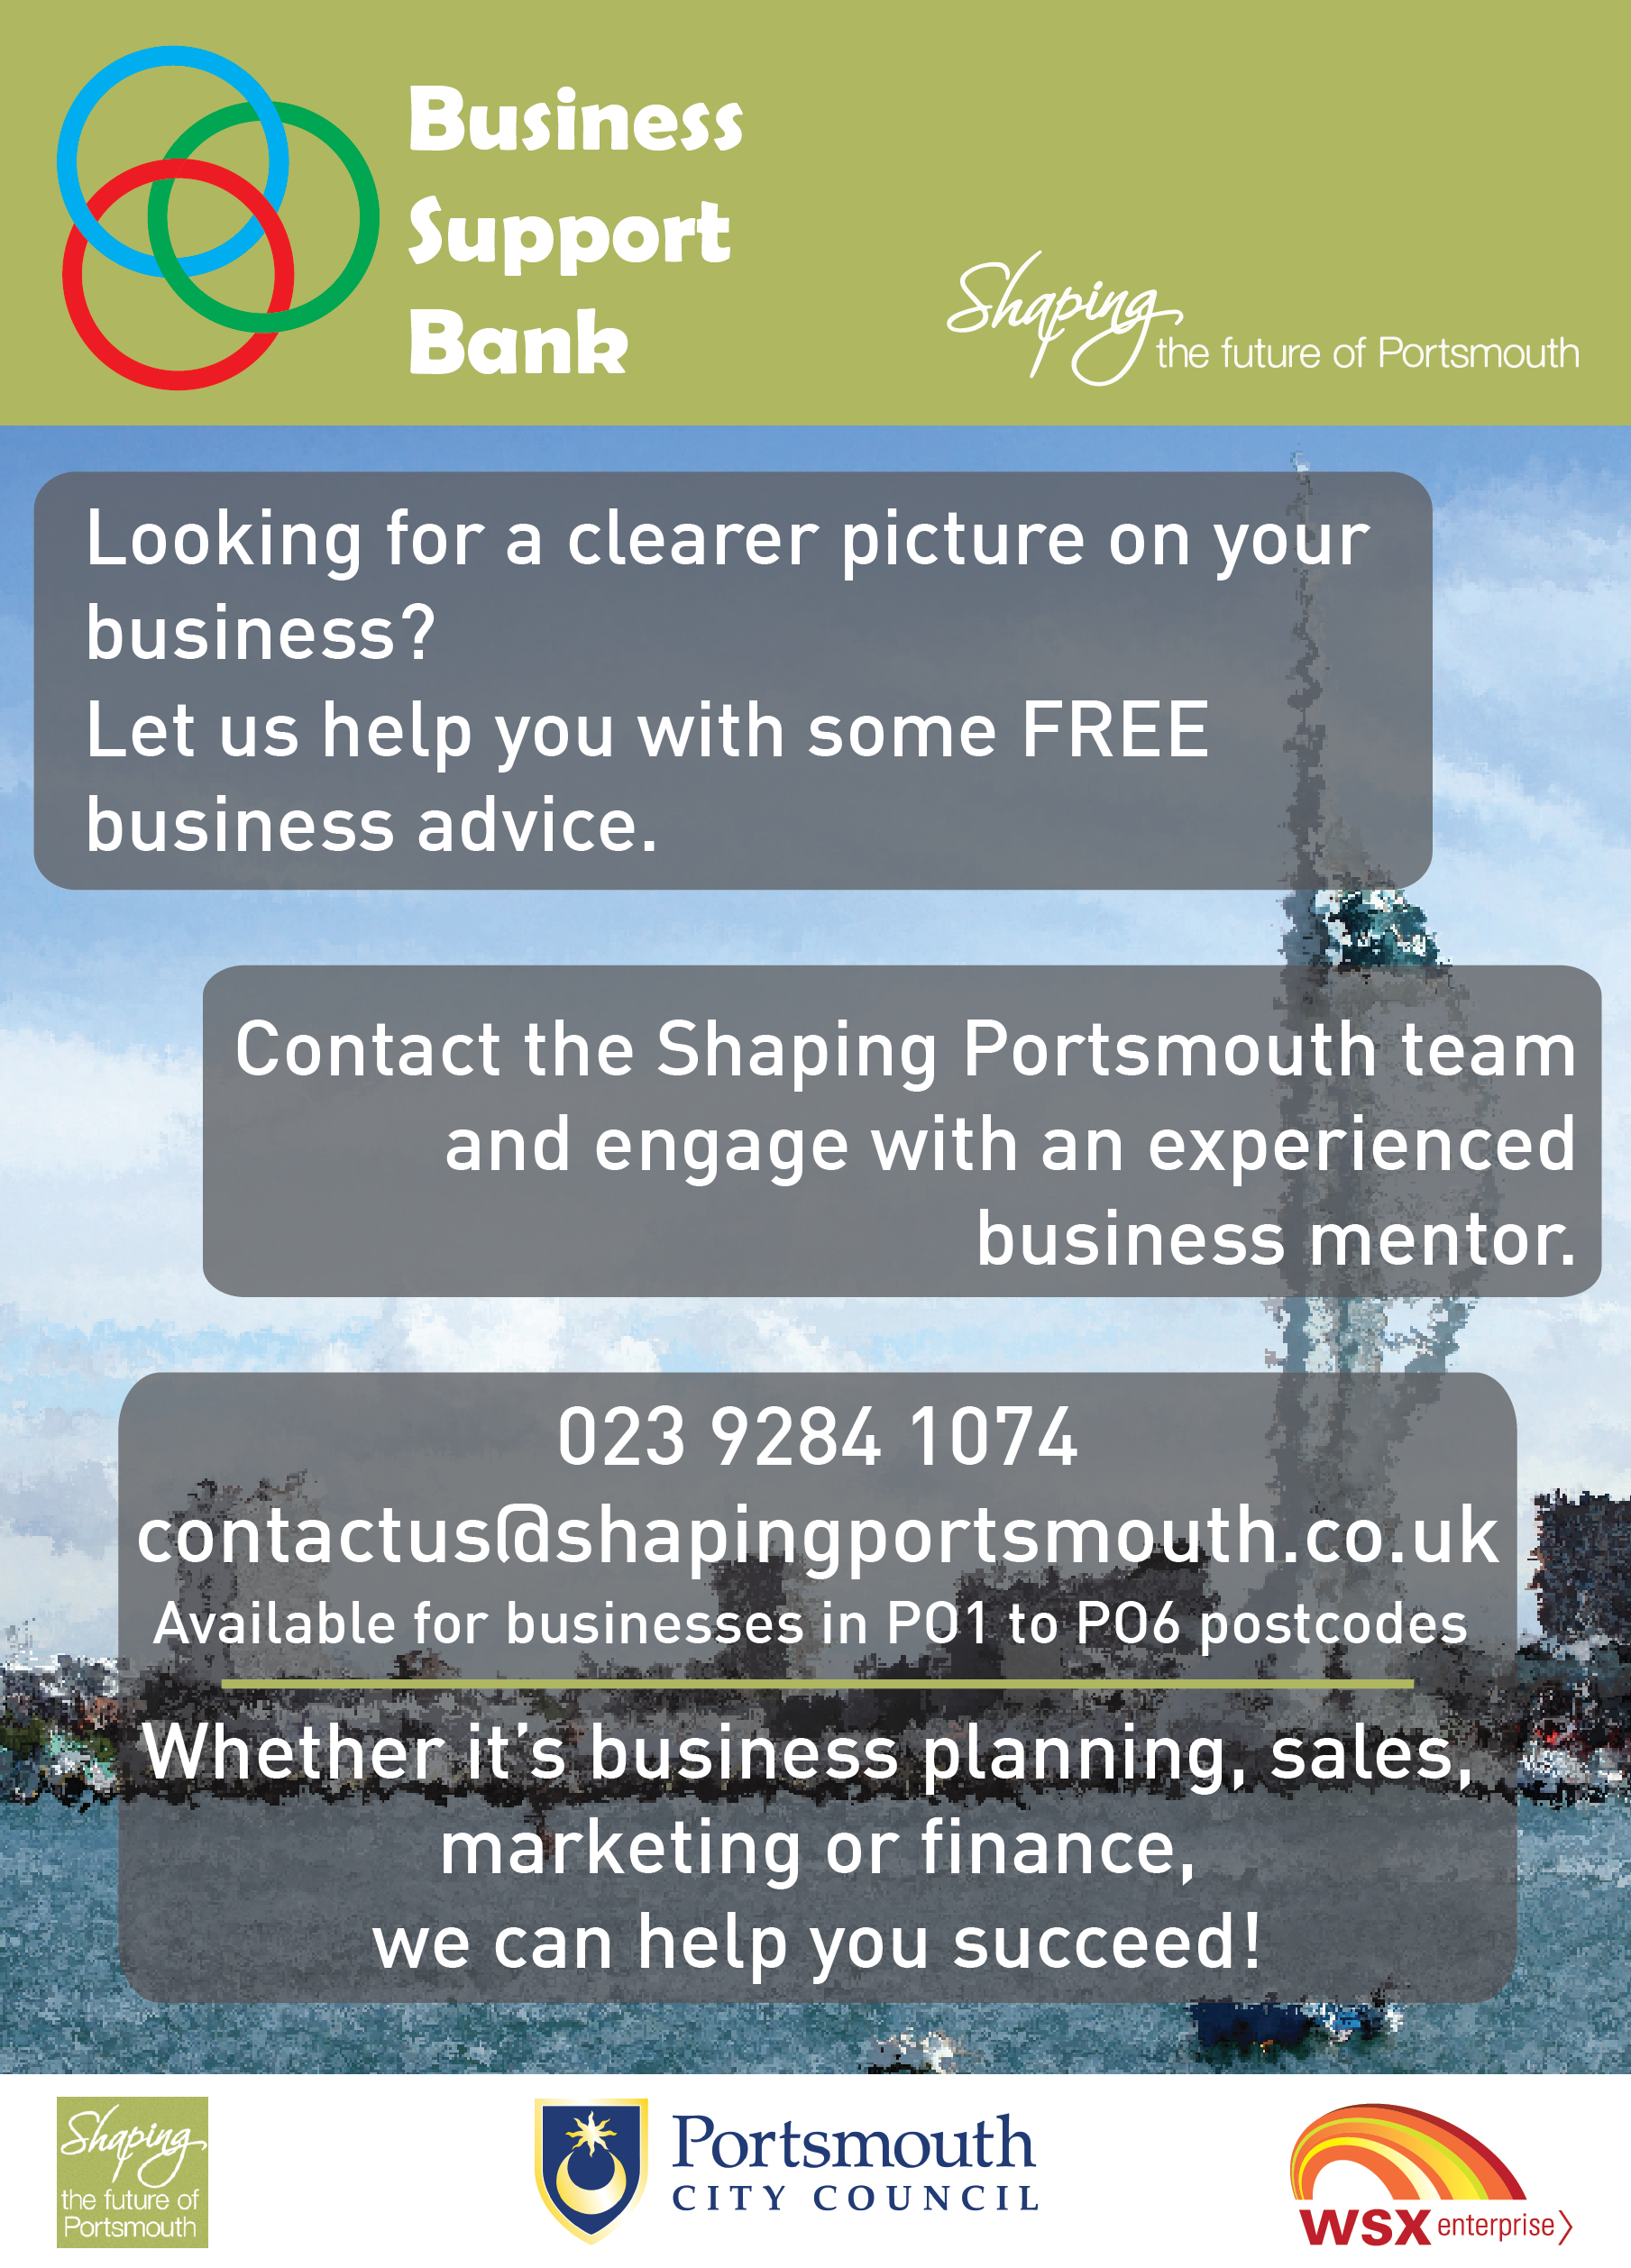 Business Support Bank Flyer - call 02392841074 for further information